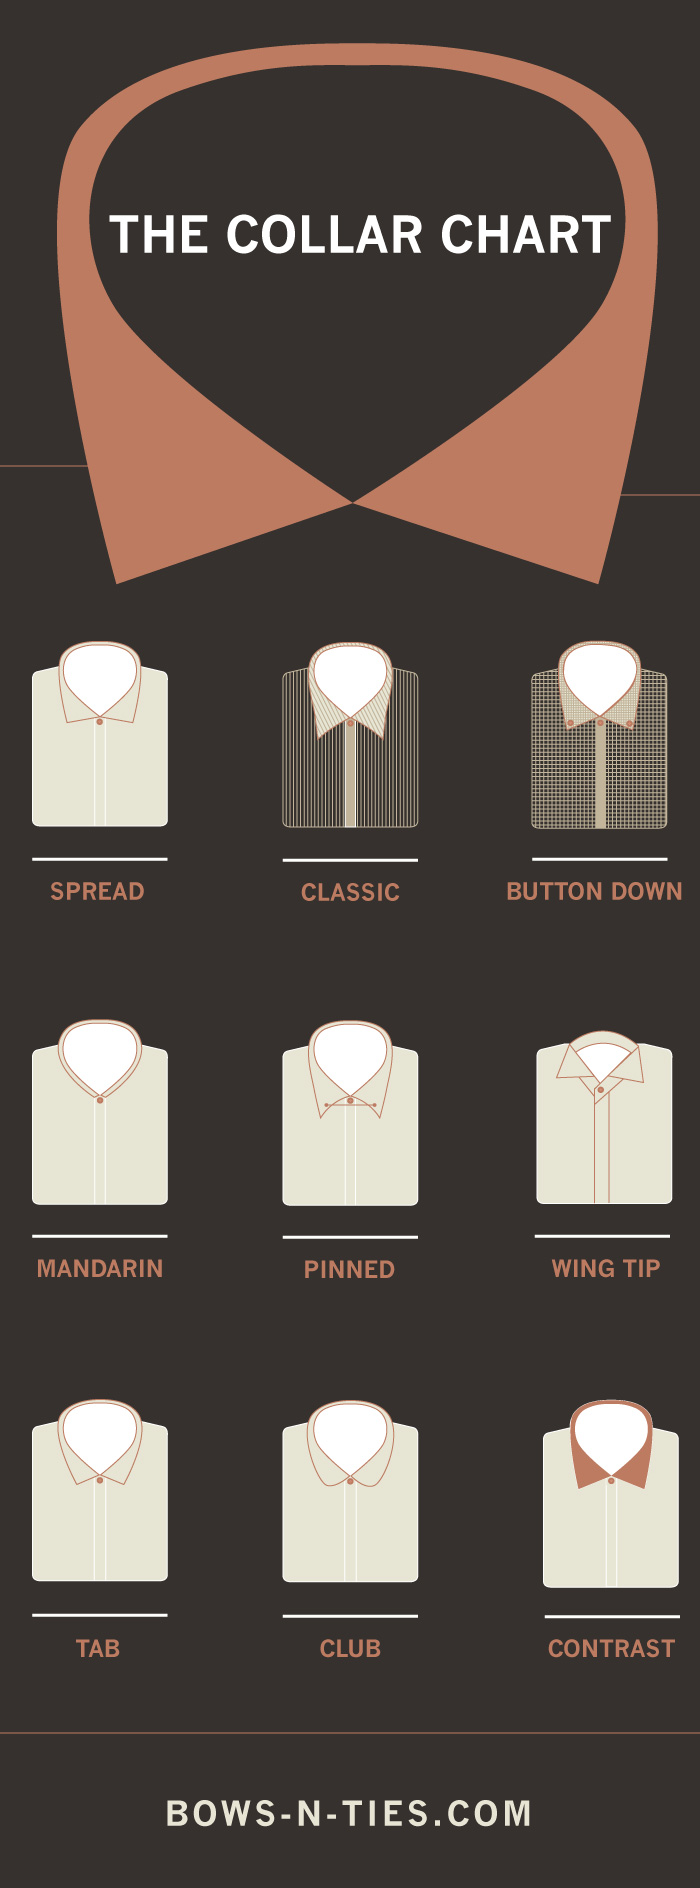 Chart For Men's Collared Shirts